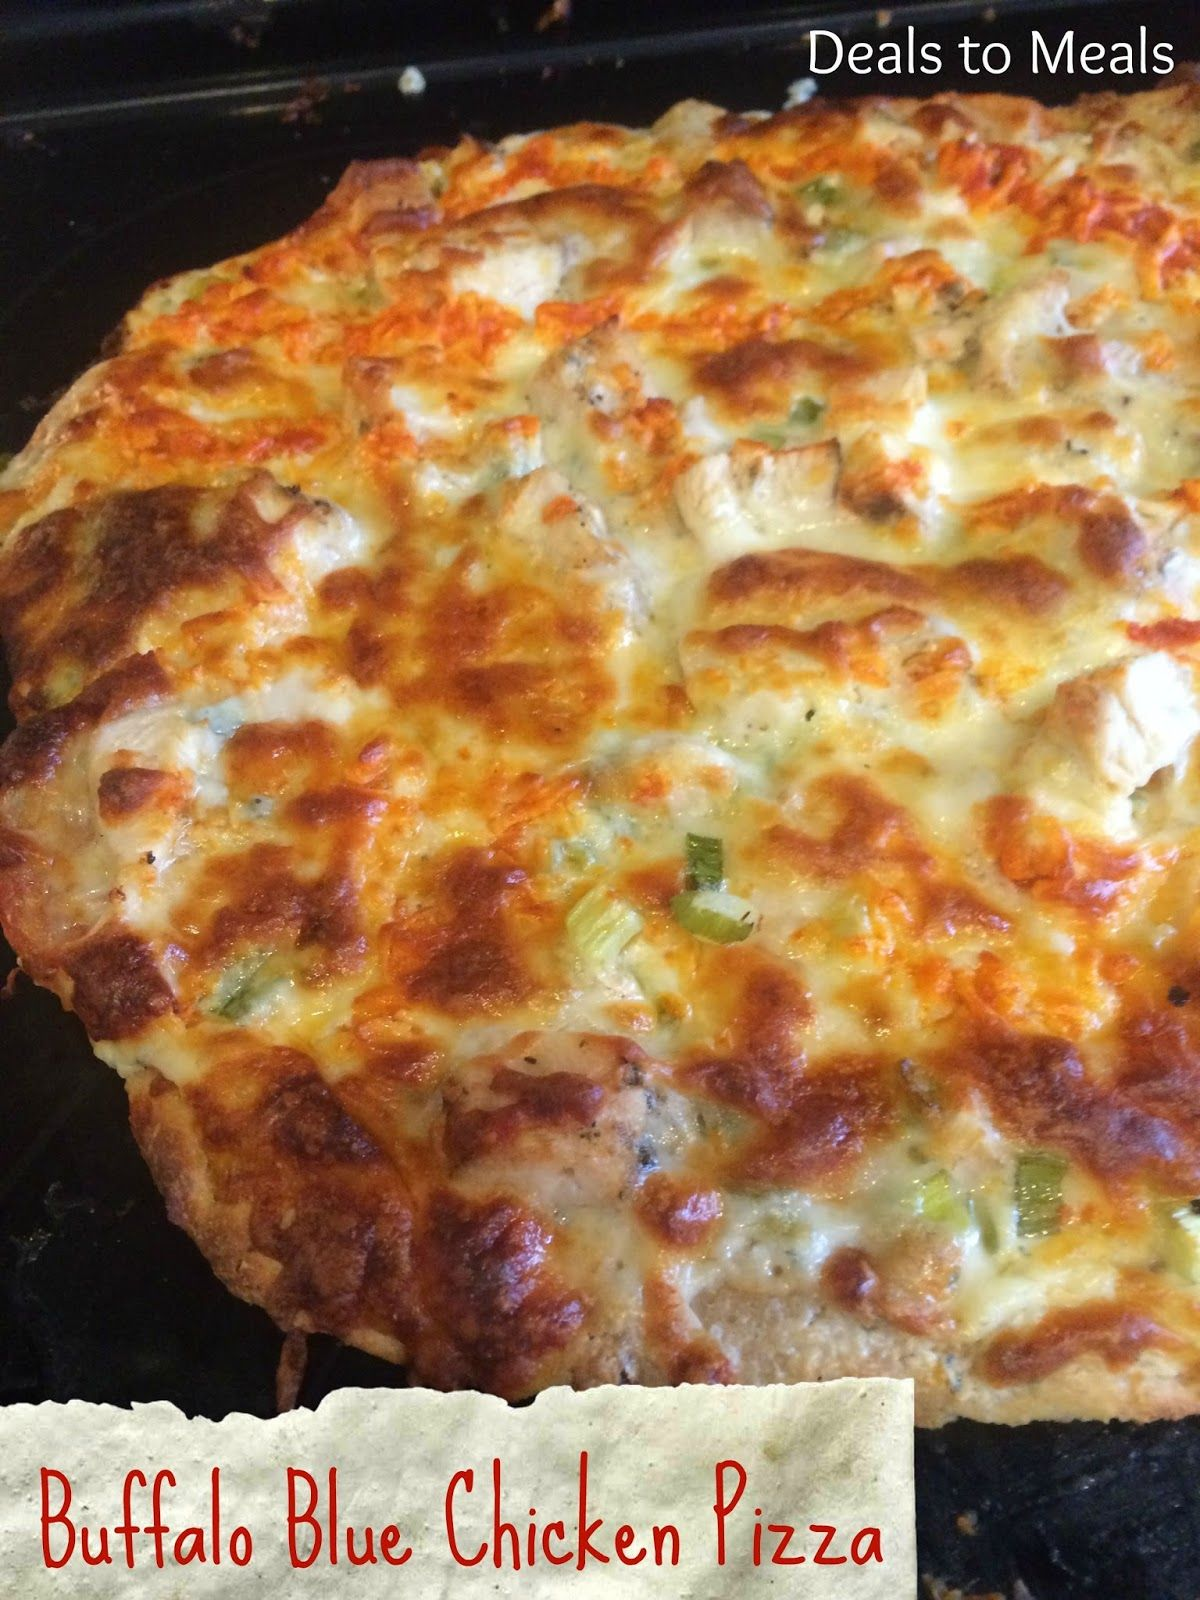 favorite pizza recipes, homemade pizza crust, homemade pizzas, Easy Meal Ideas, Sweet Thai Chicken Pizza, Buffalo Blue Chicken Pizza, buffalo recipe, rock creek pizza, Deals to Meals